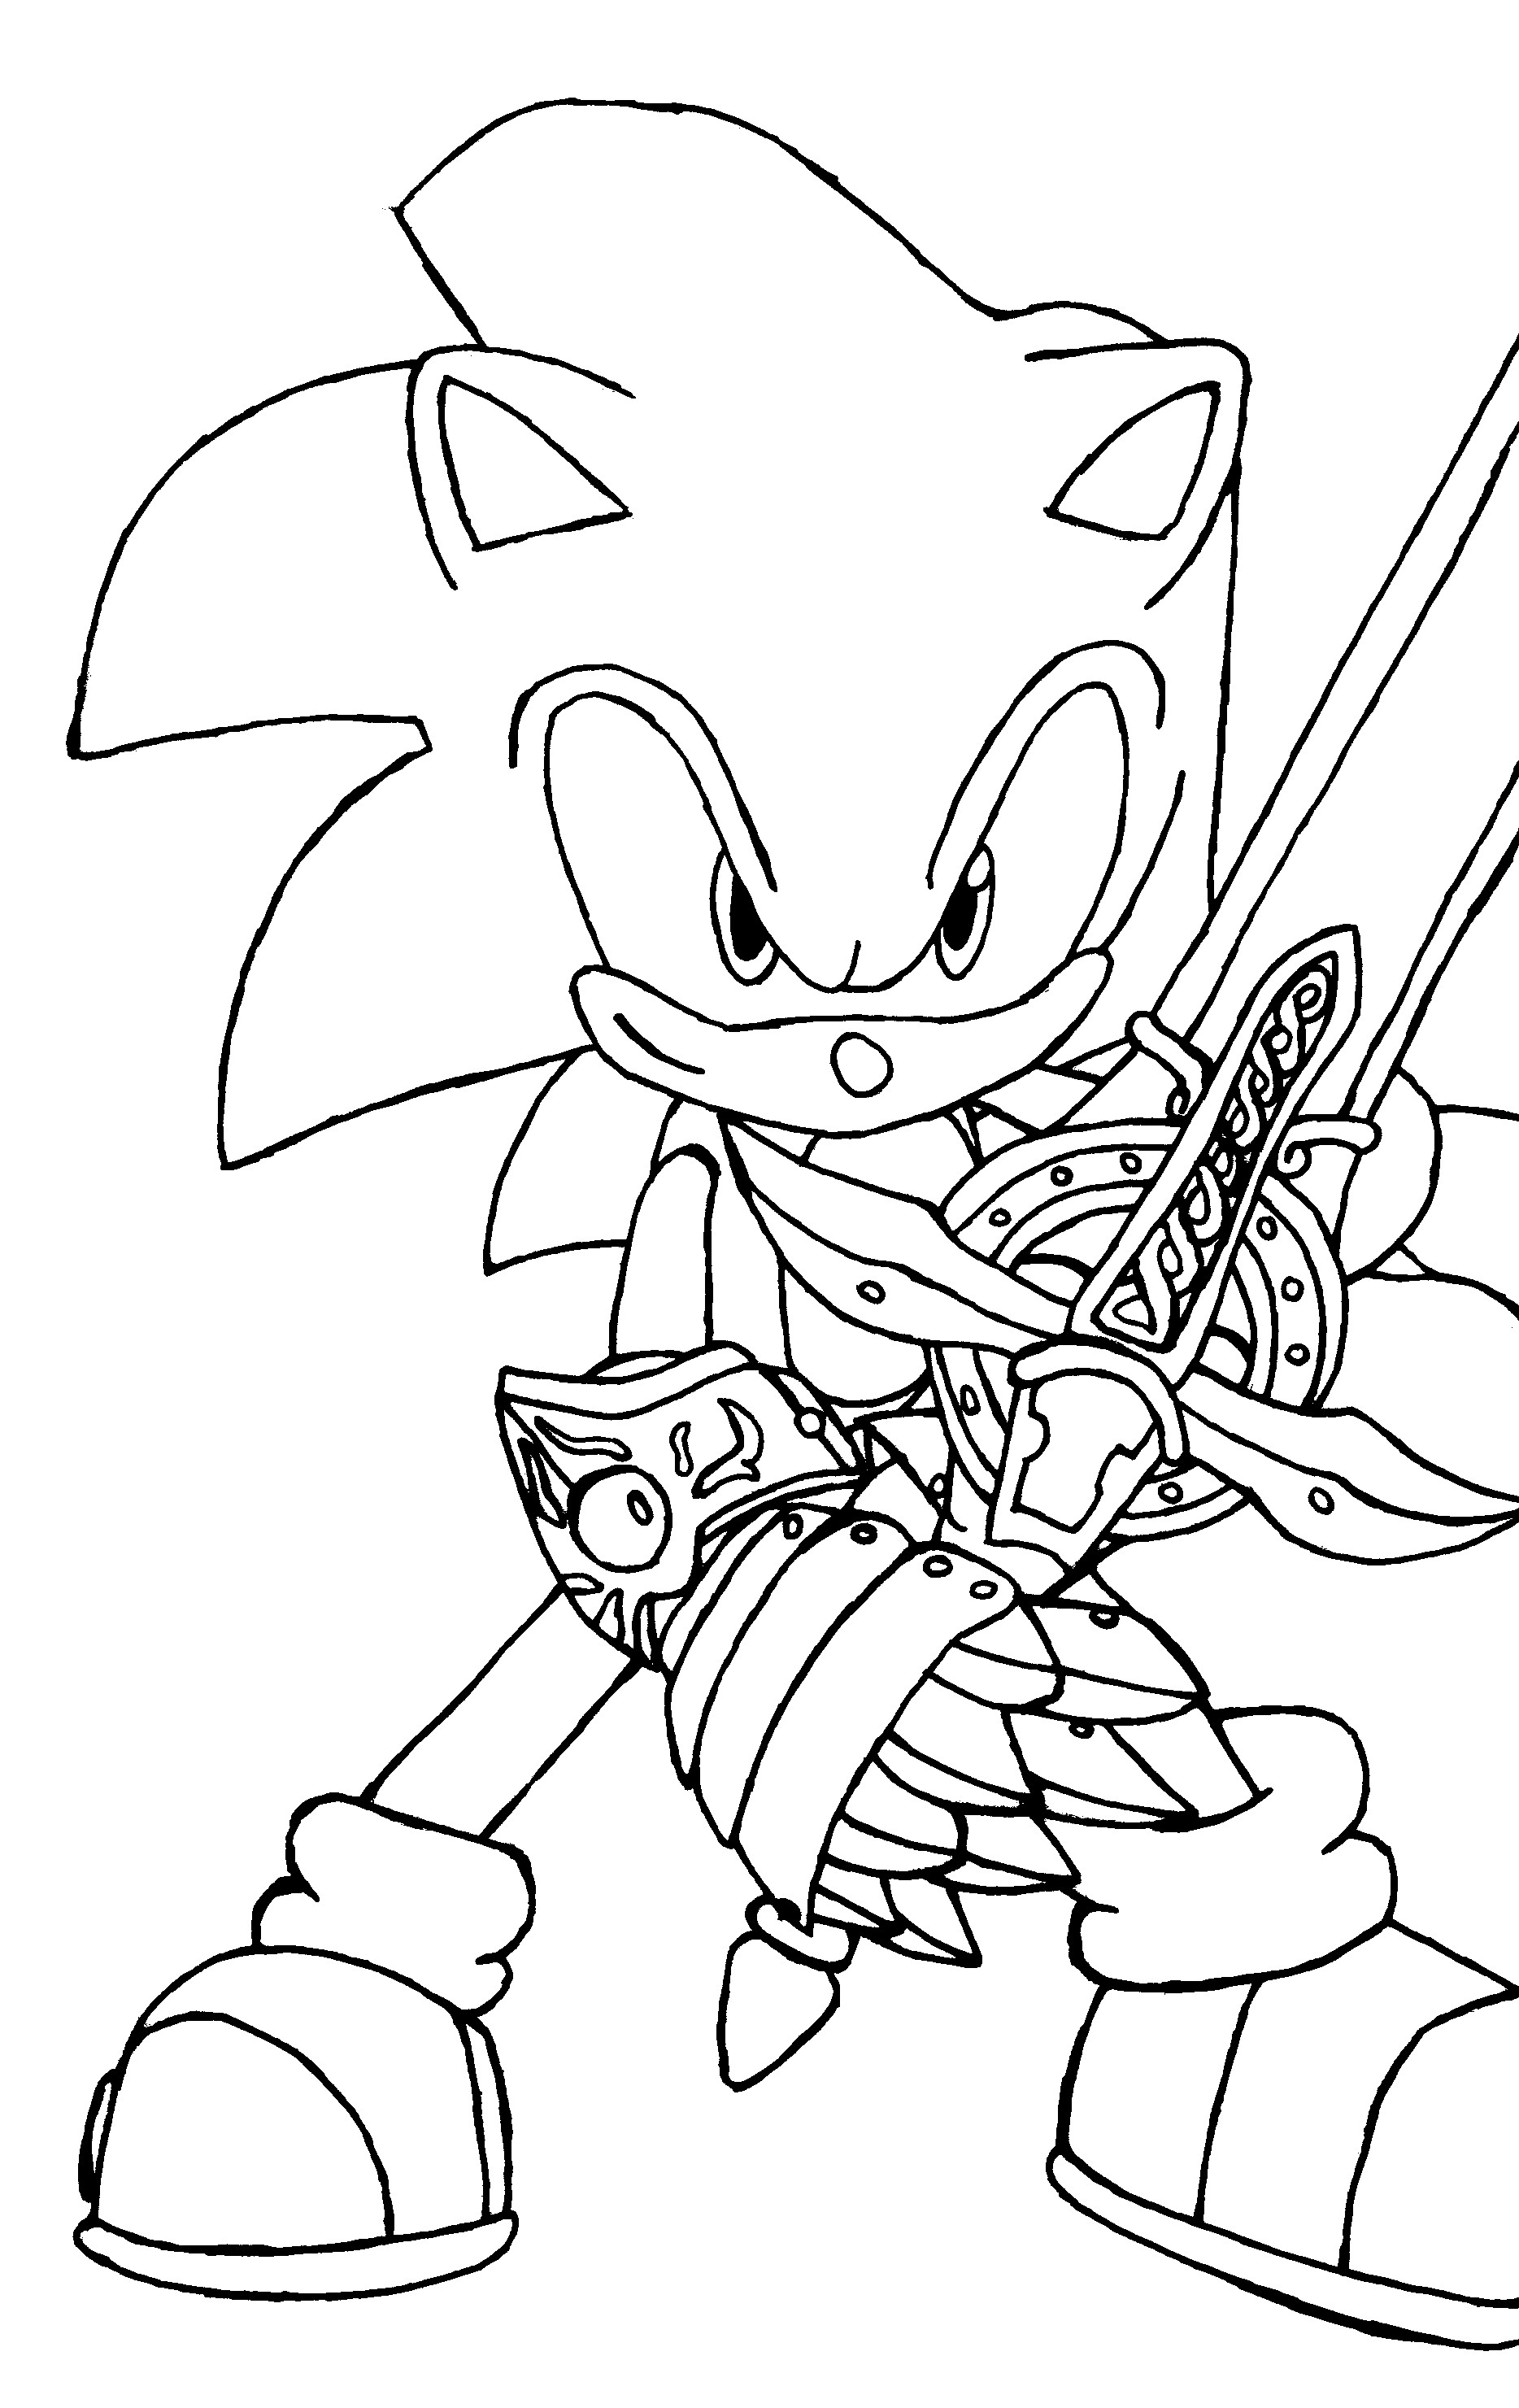 sonic the hedgehog coloring sheets free printable sonic the hedgehog coloring pages for kids the sonic sheets coloring hedgehog